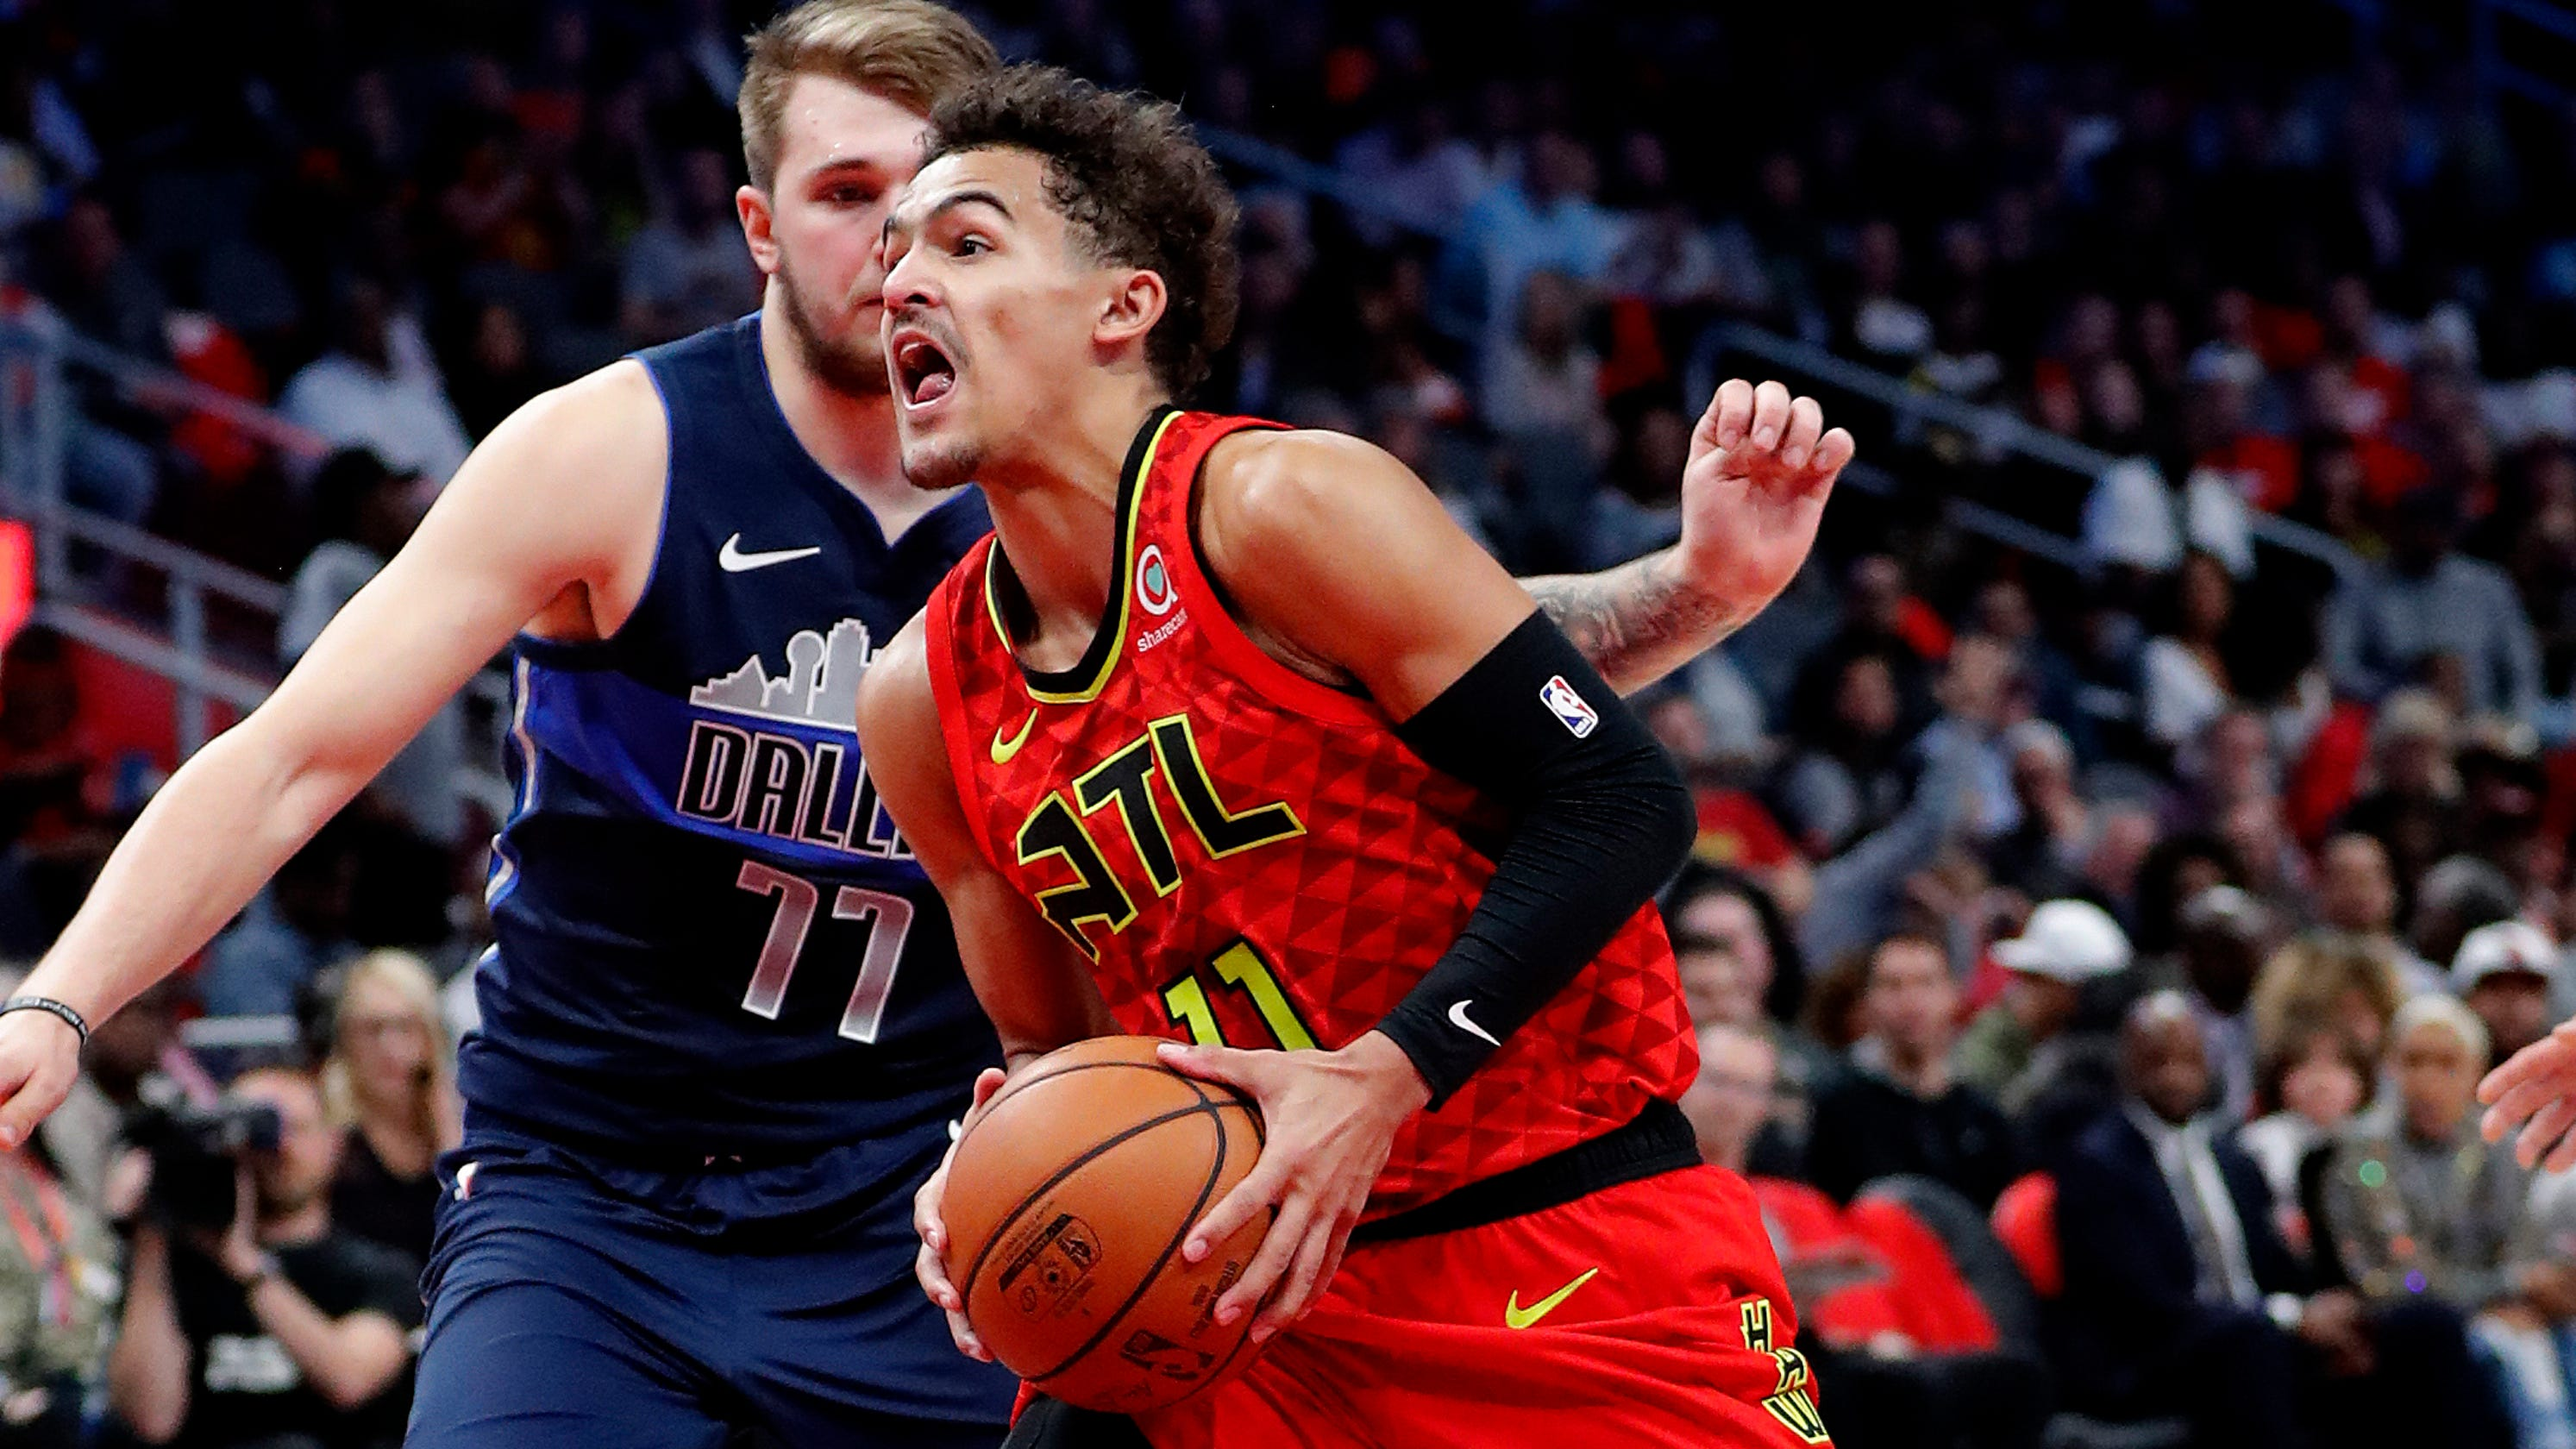 c0b52239d8e1 Hawks  Young bests Mavs  Doncic in first meeting since trade